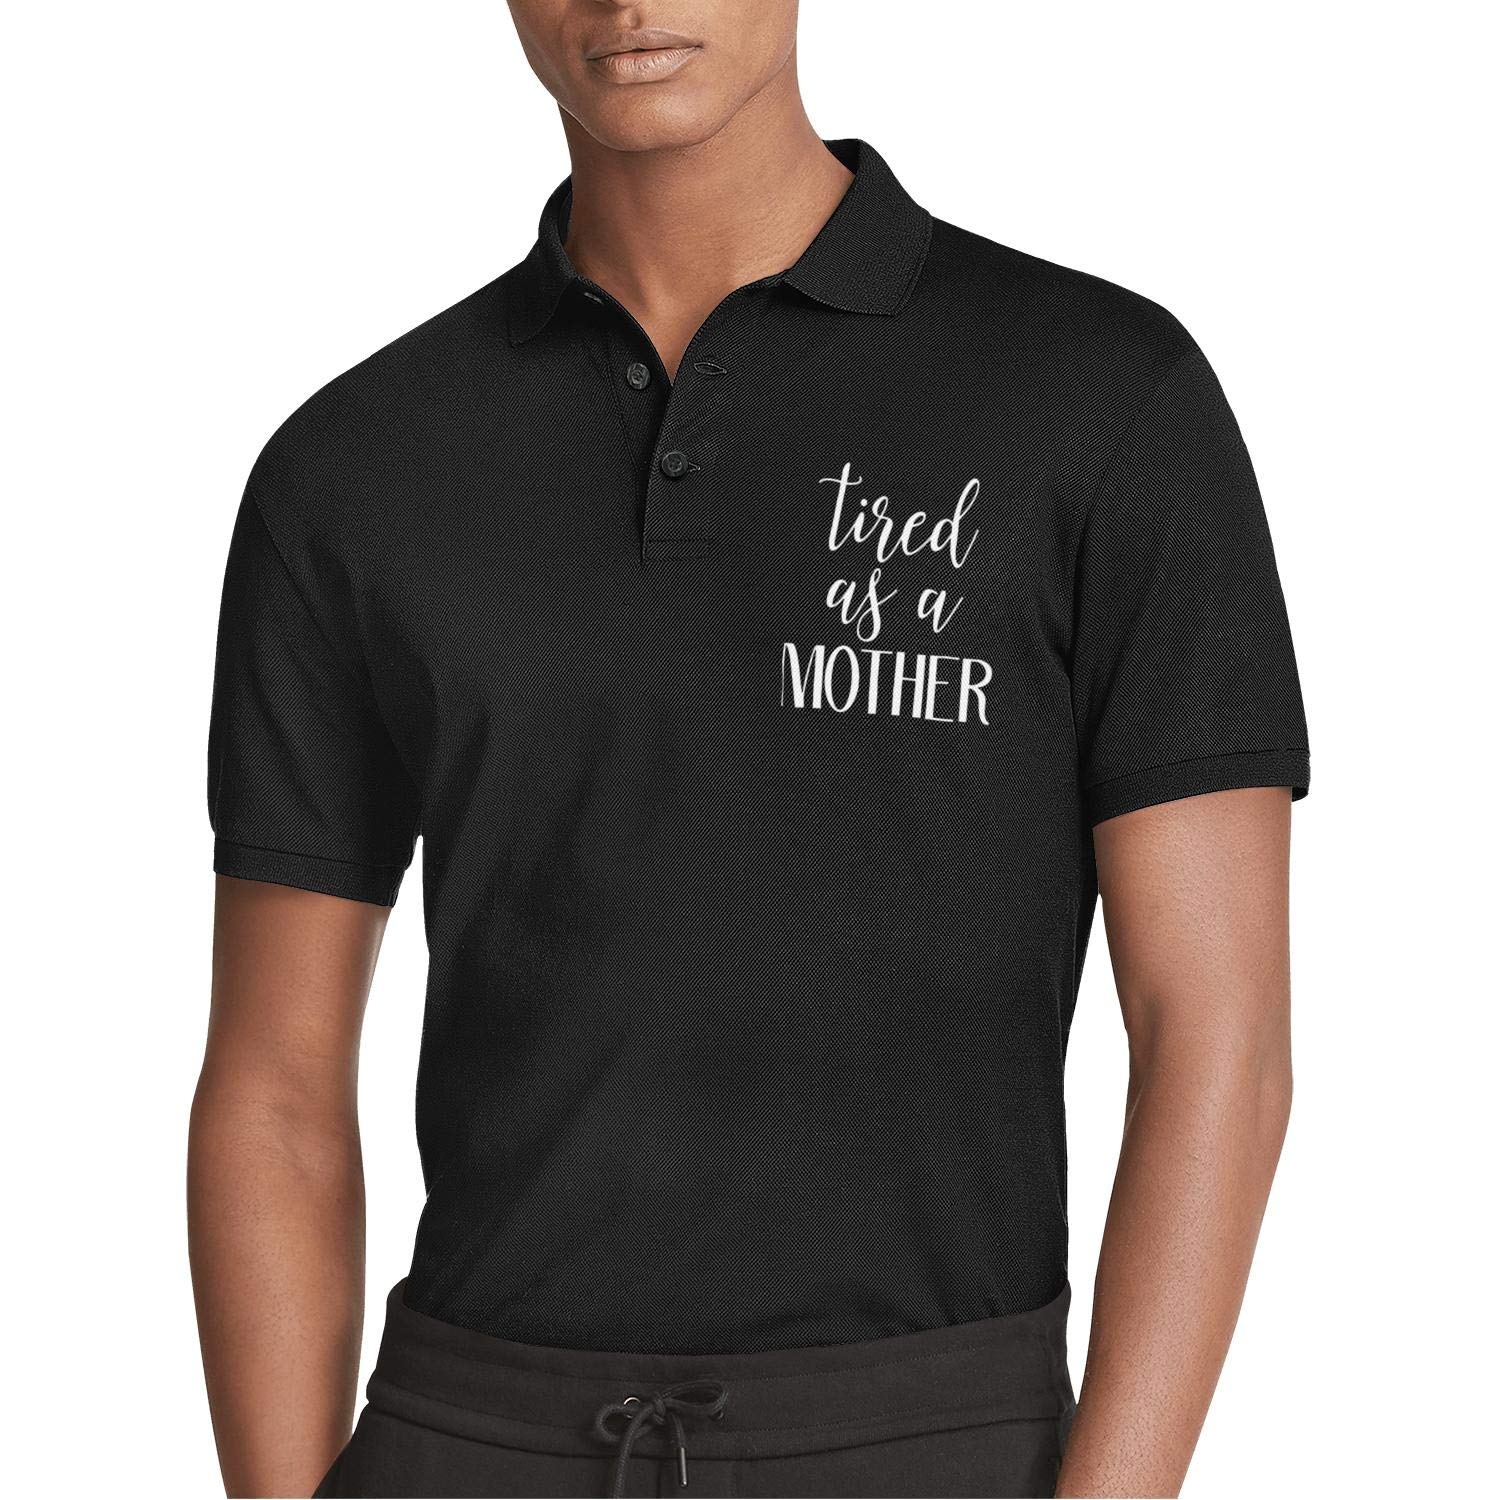 WYFEN Mens Printed Polo Shirt Mothers Day Tired as a Mother Style Short Sleeve Tee